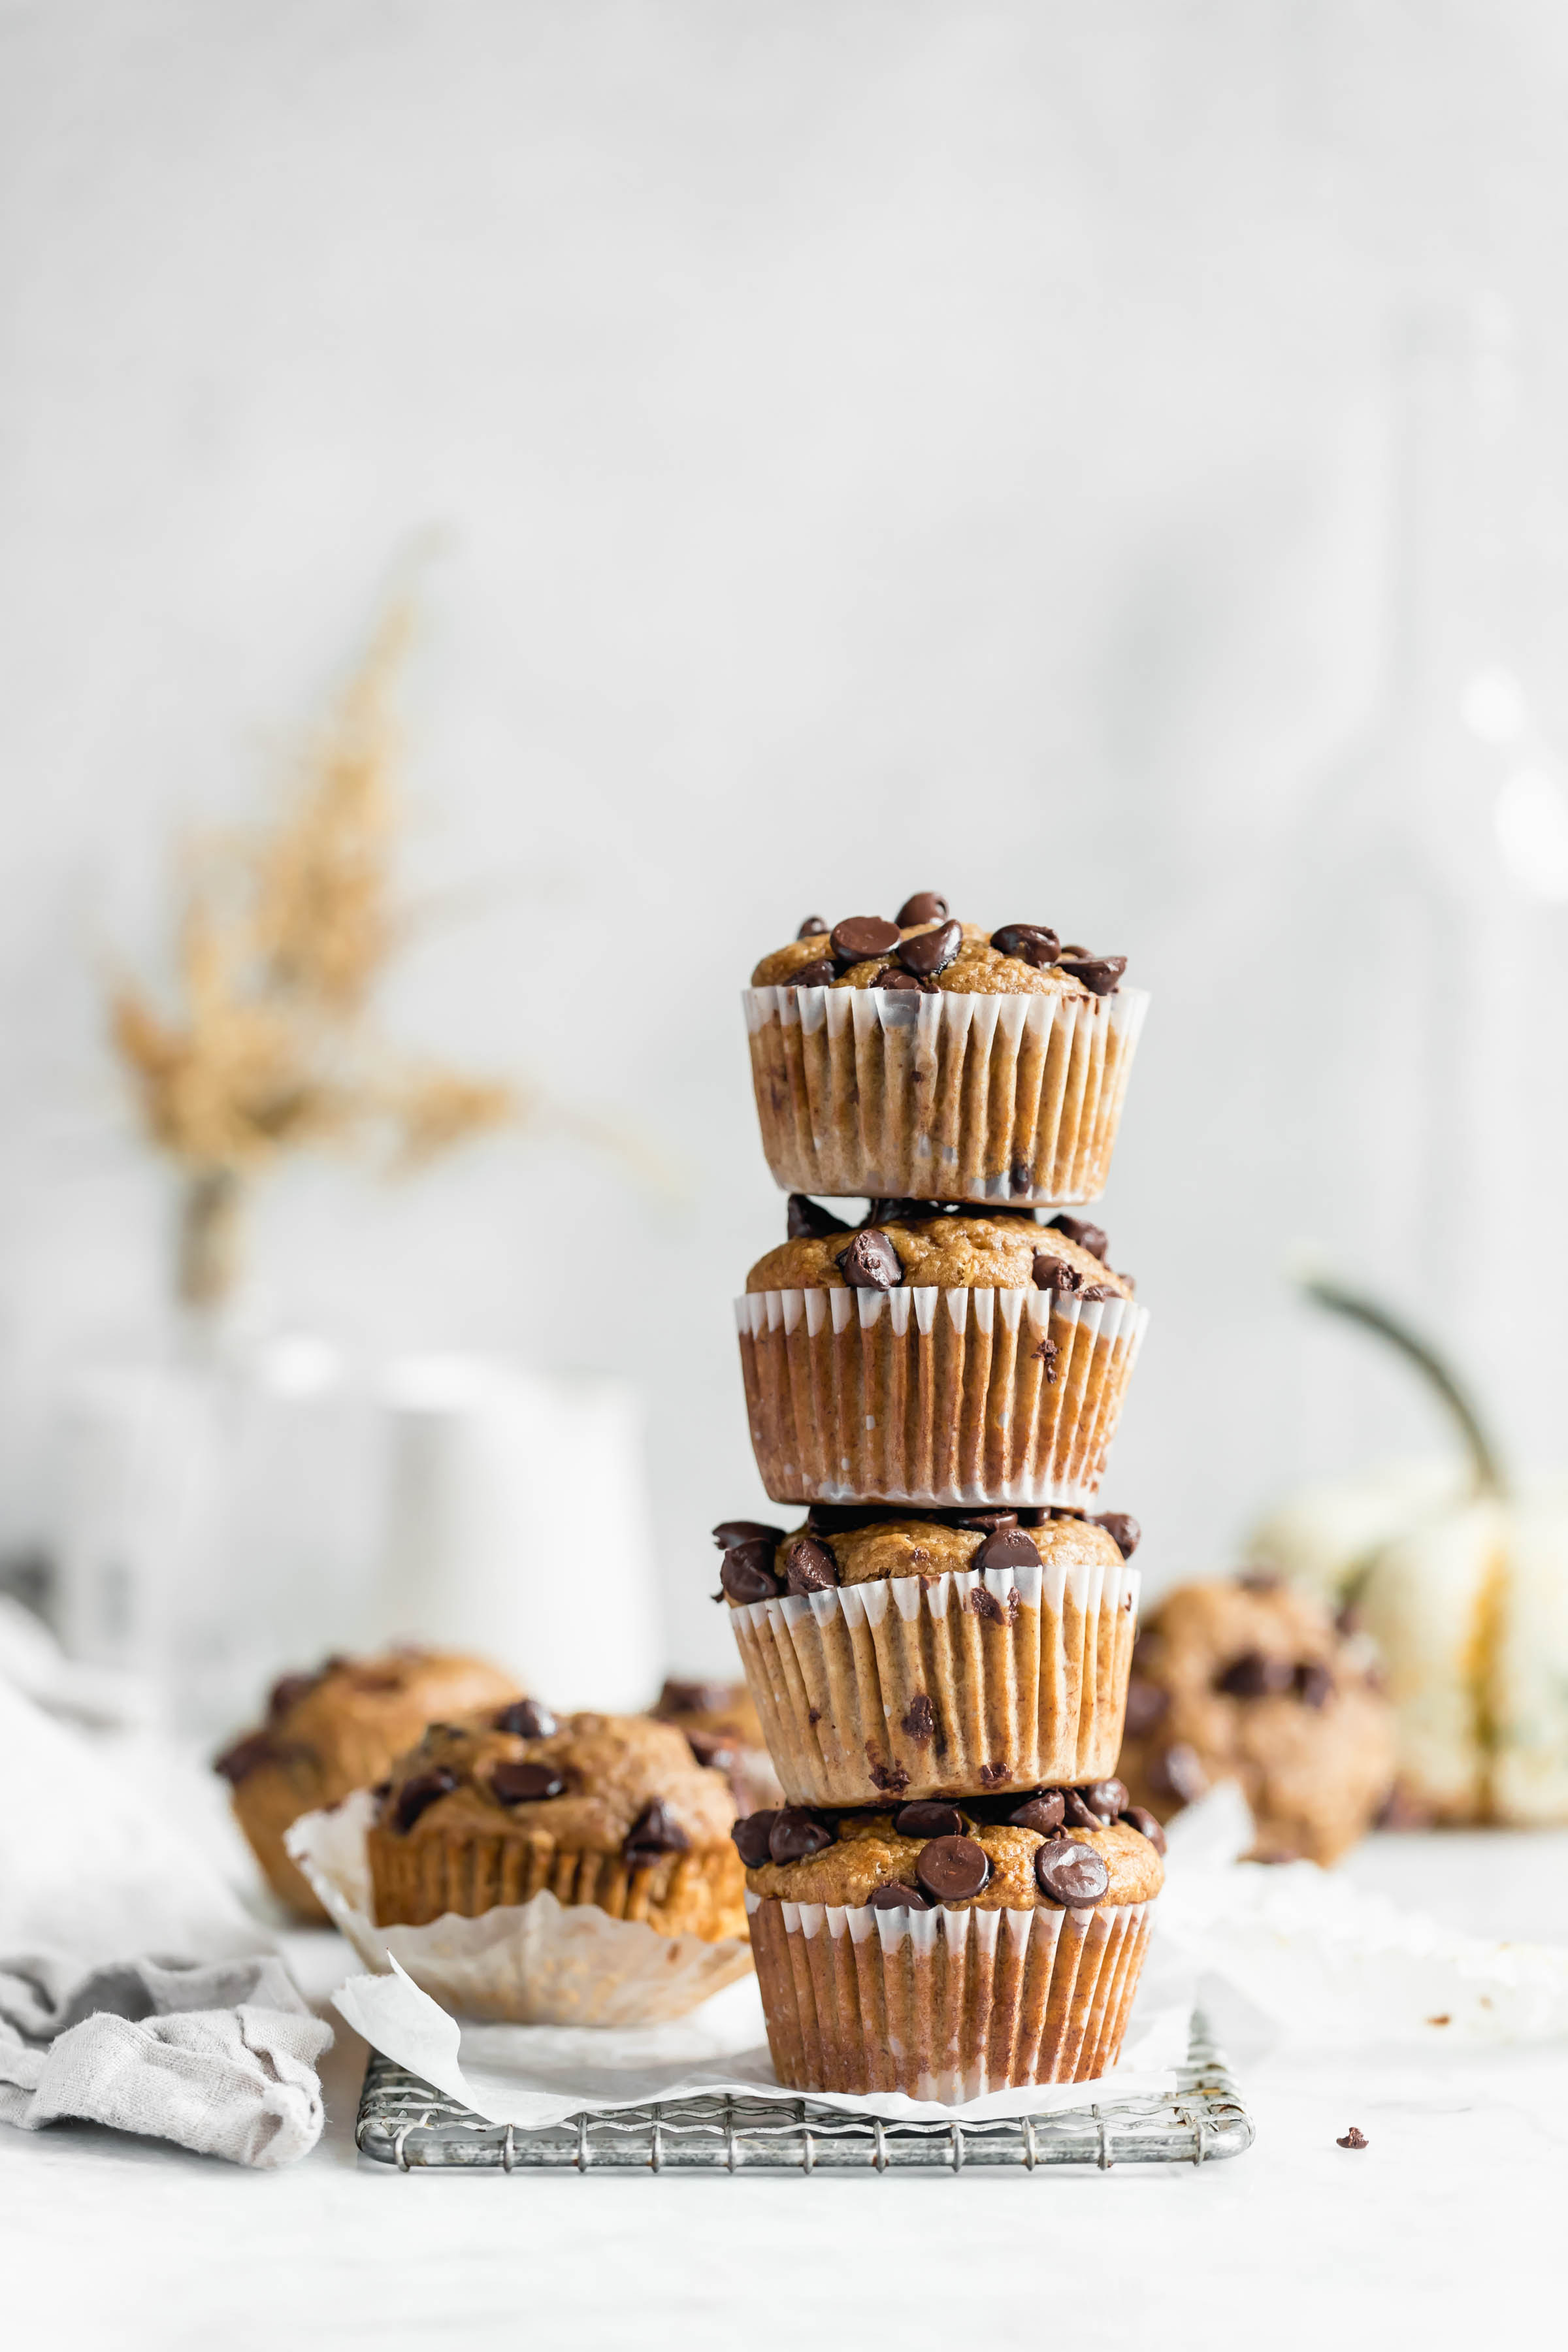 What do you need? This full stack of one bowl healthy peanut butter banana muffins!